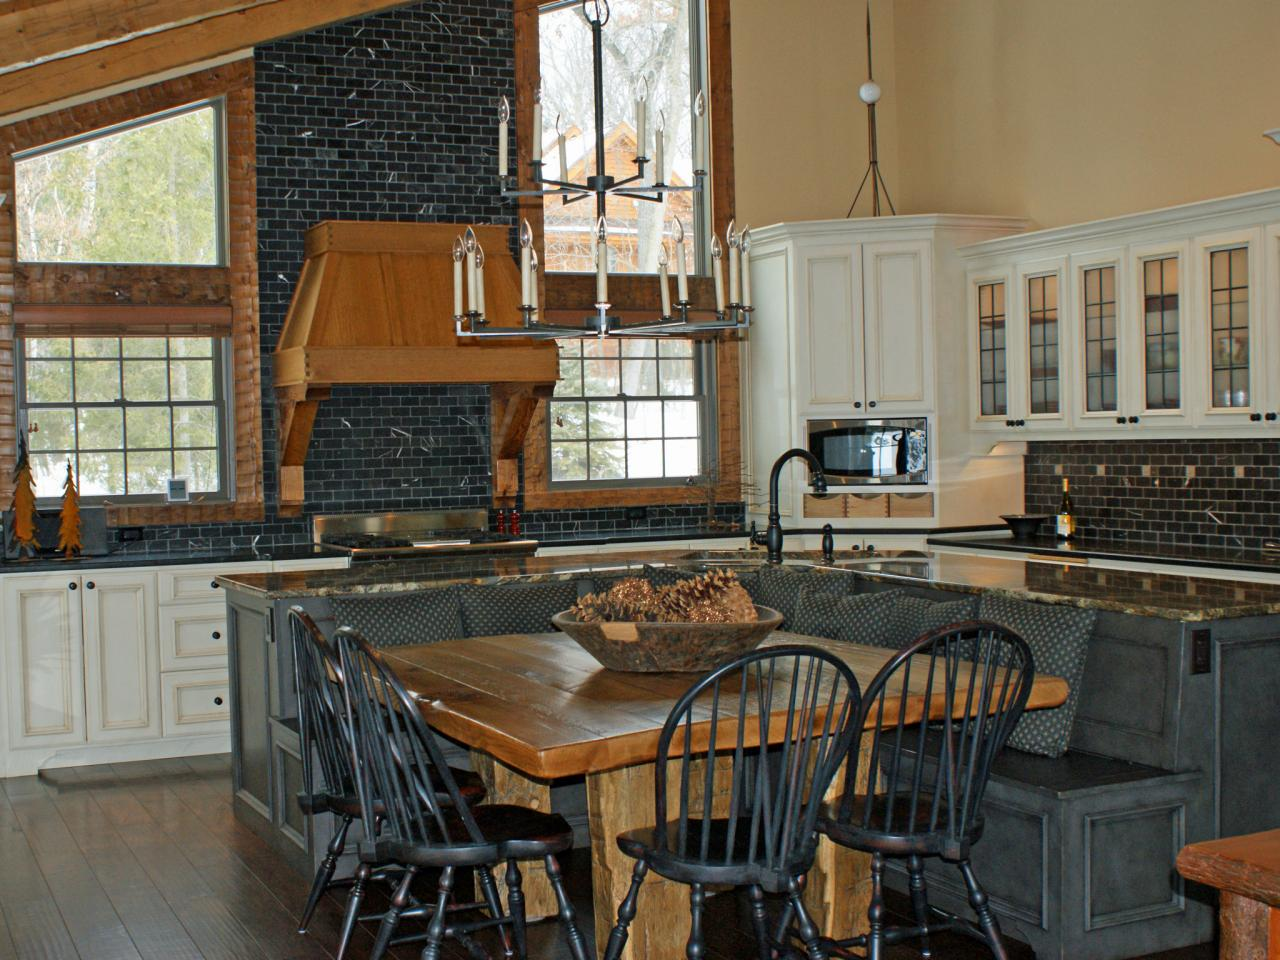 rustic eat kitchen black honed marble backsplash country rustic kitchen backsplash ideas rustic kitchen backsplash ideas